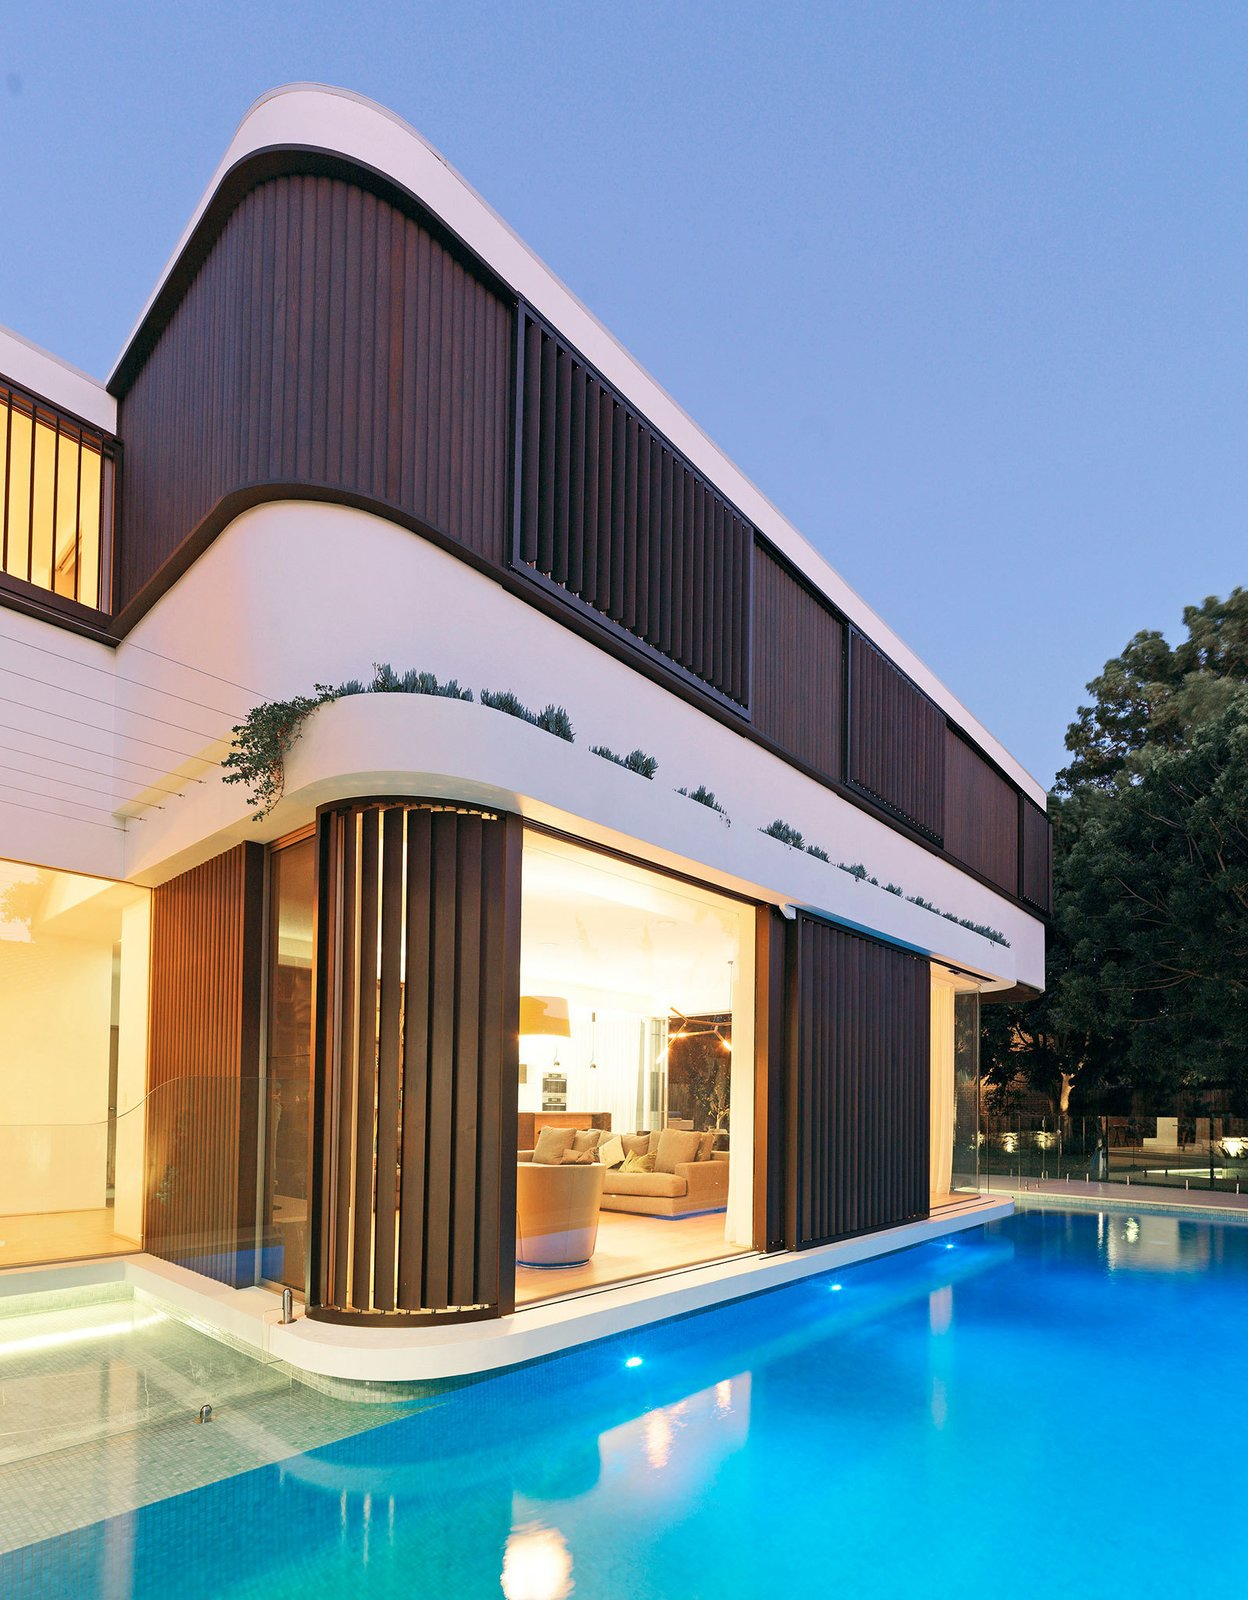 """By dividing the first floor walls in three strips, the horizontality is reinforced; a lower structural spandrel below the windows, finished with an acrylic white render, a middle window strip with timber shutters and timber """"log cabin"""" weatherboards, and an upper roof edge also finished with an acrylic render. © Justin Alexander  The Pool House by Luigi Rosselli Architects"""